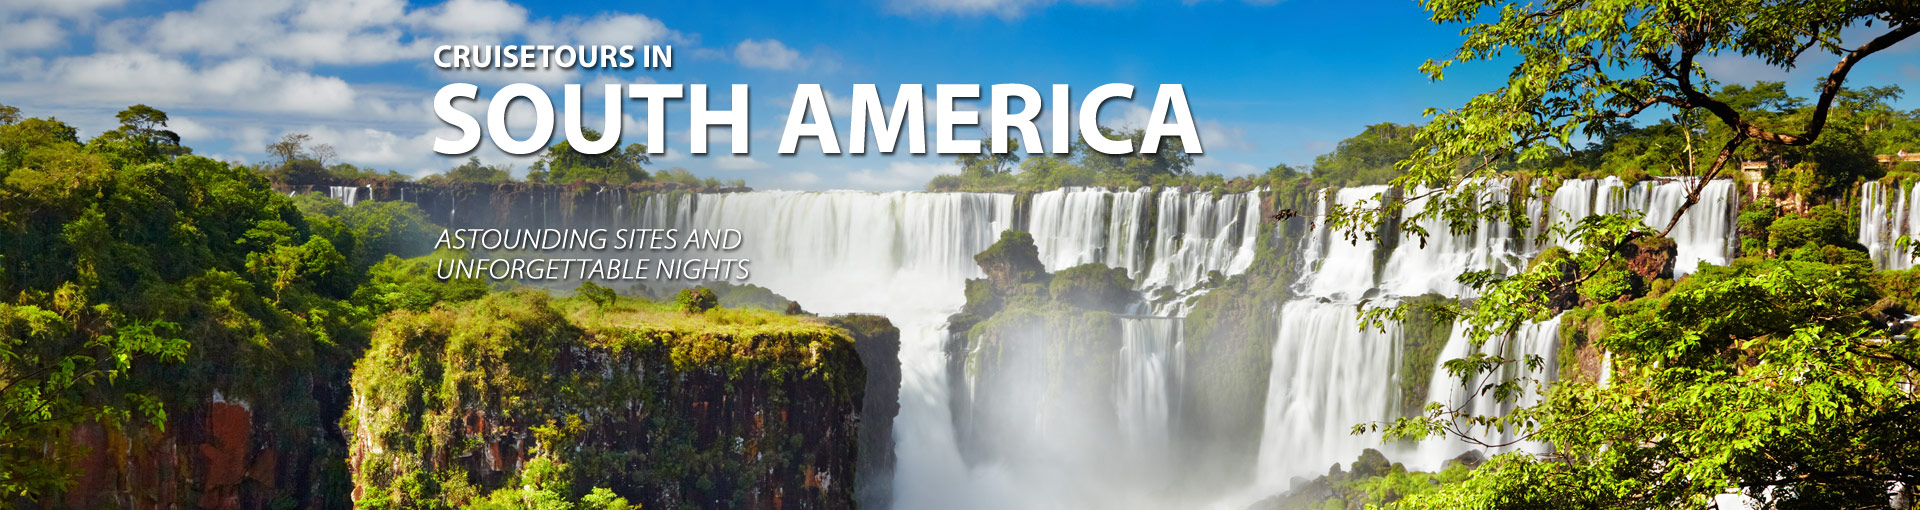 South America Cruisetours